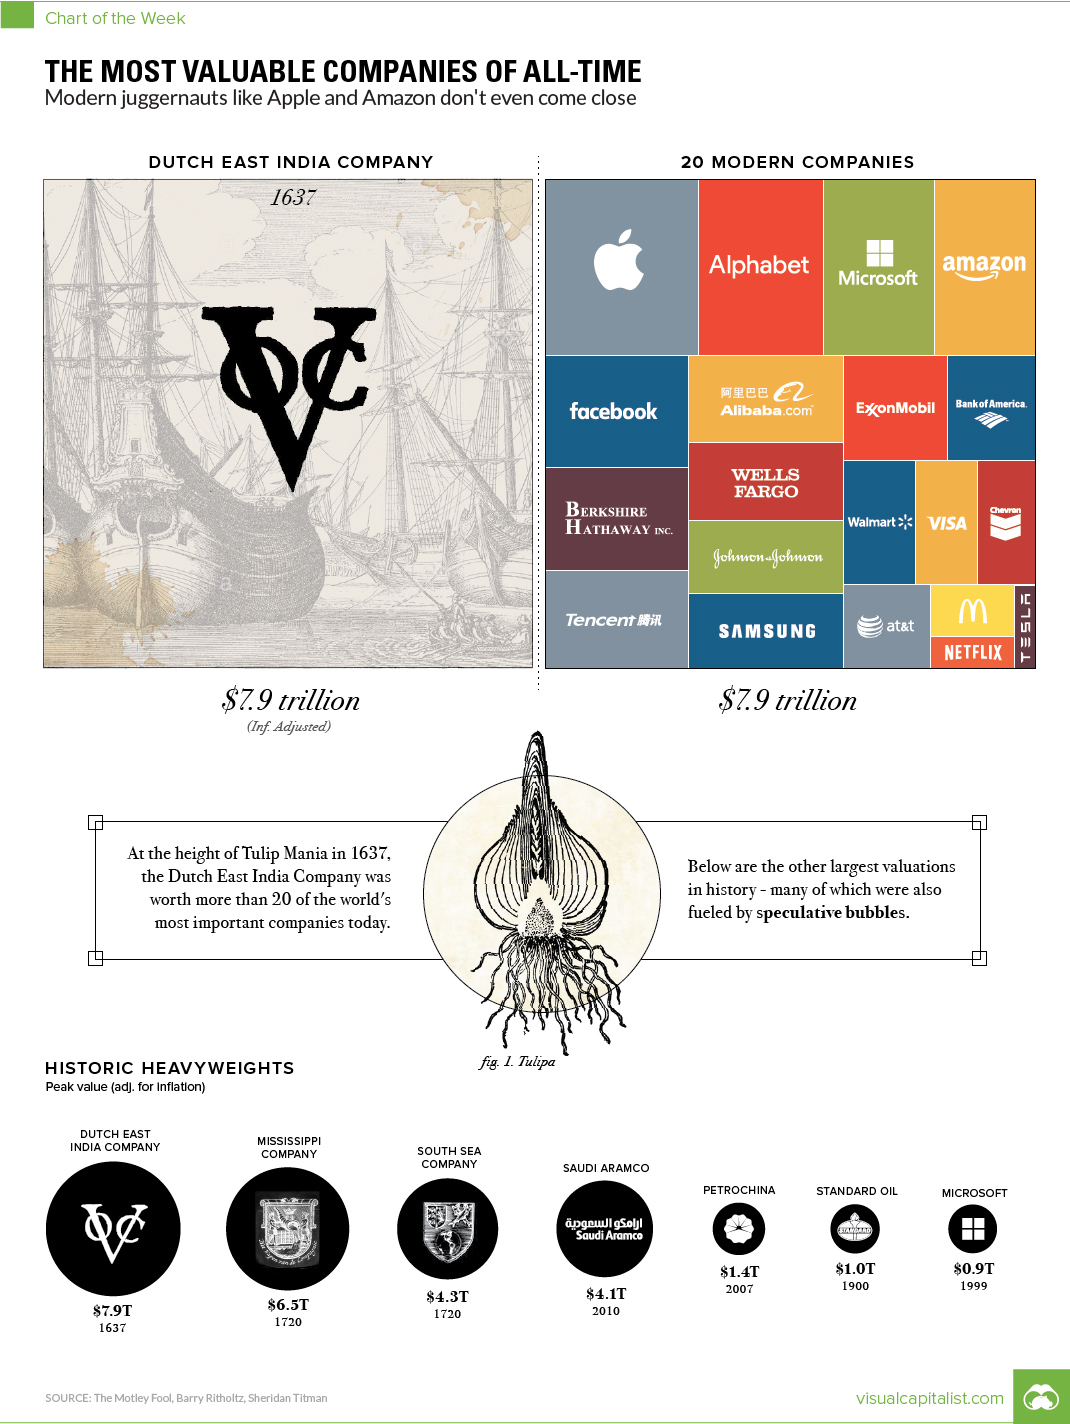 Dutch East India Company compared